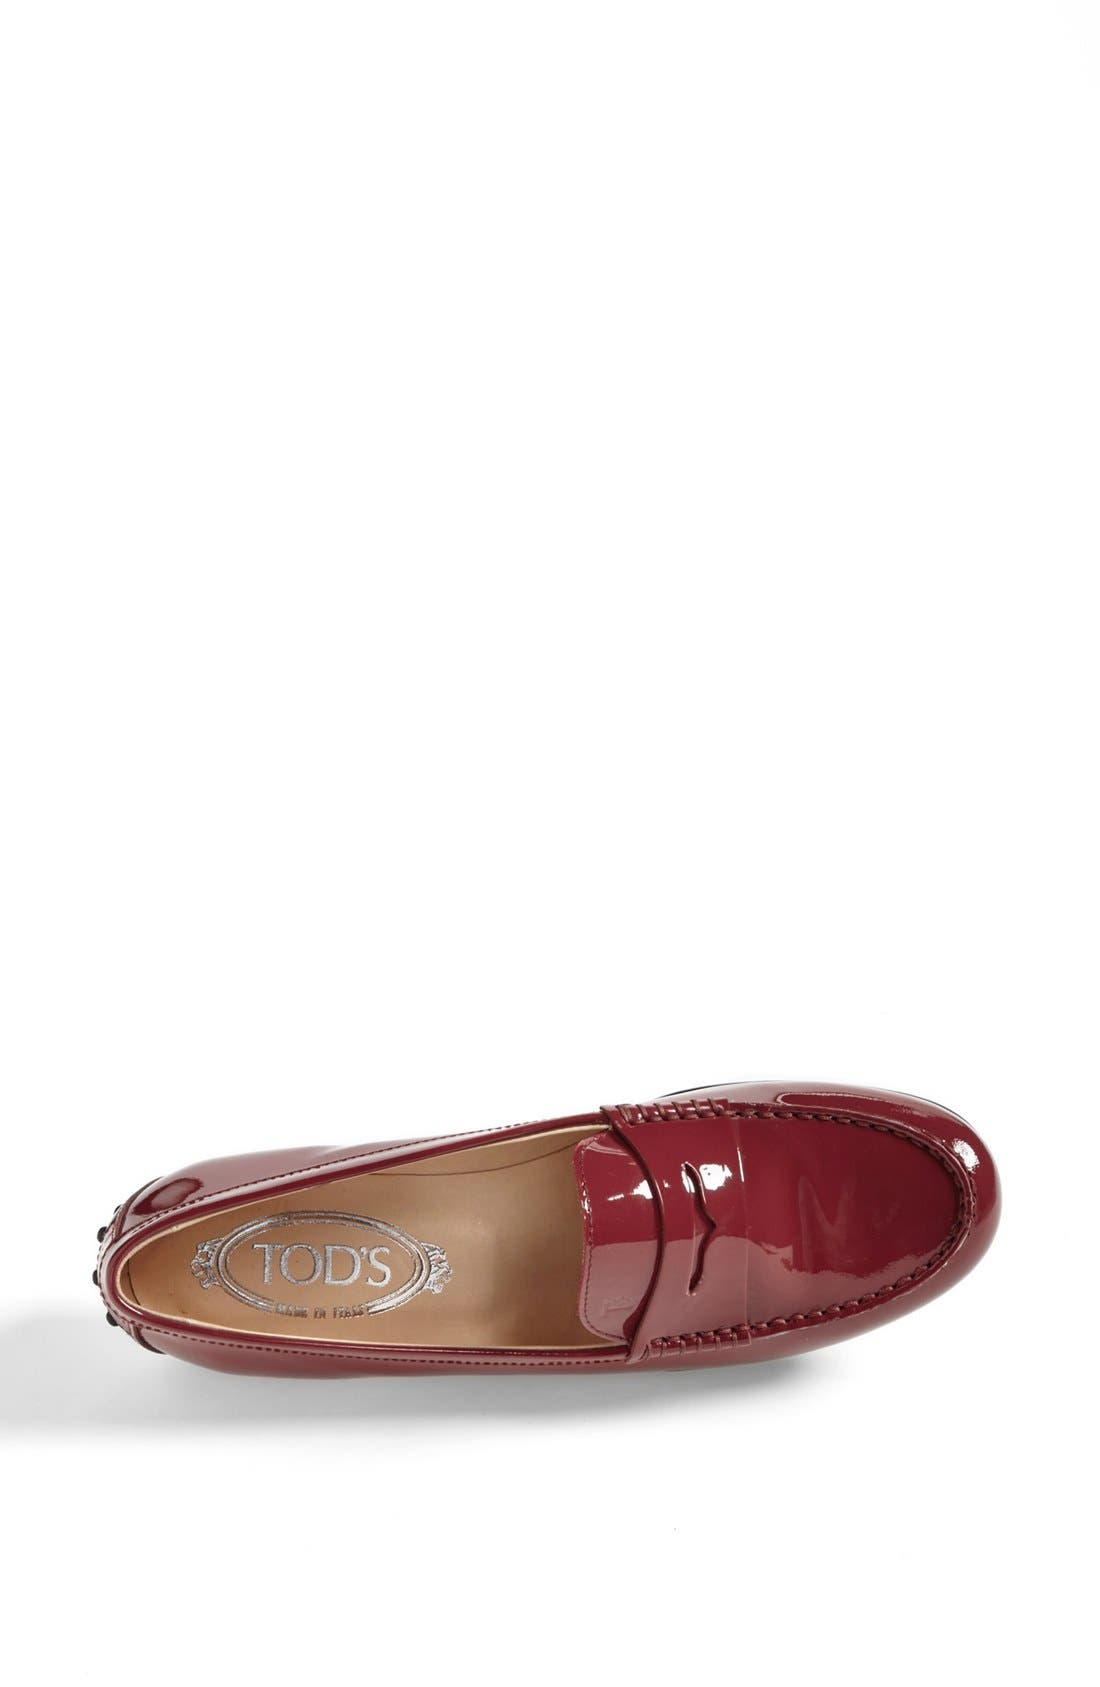 Alternate Image 3  - Tod's 'Gomma' Patent Leather Driving Moccasin